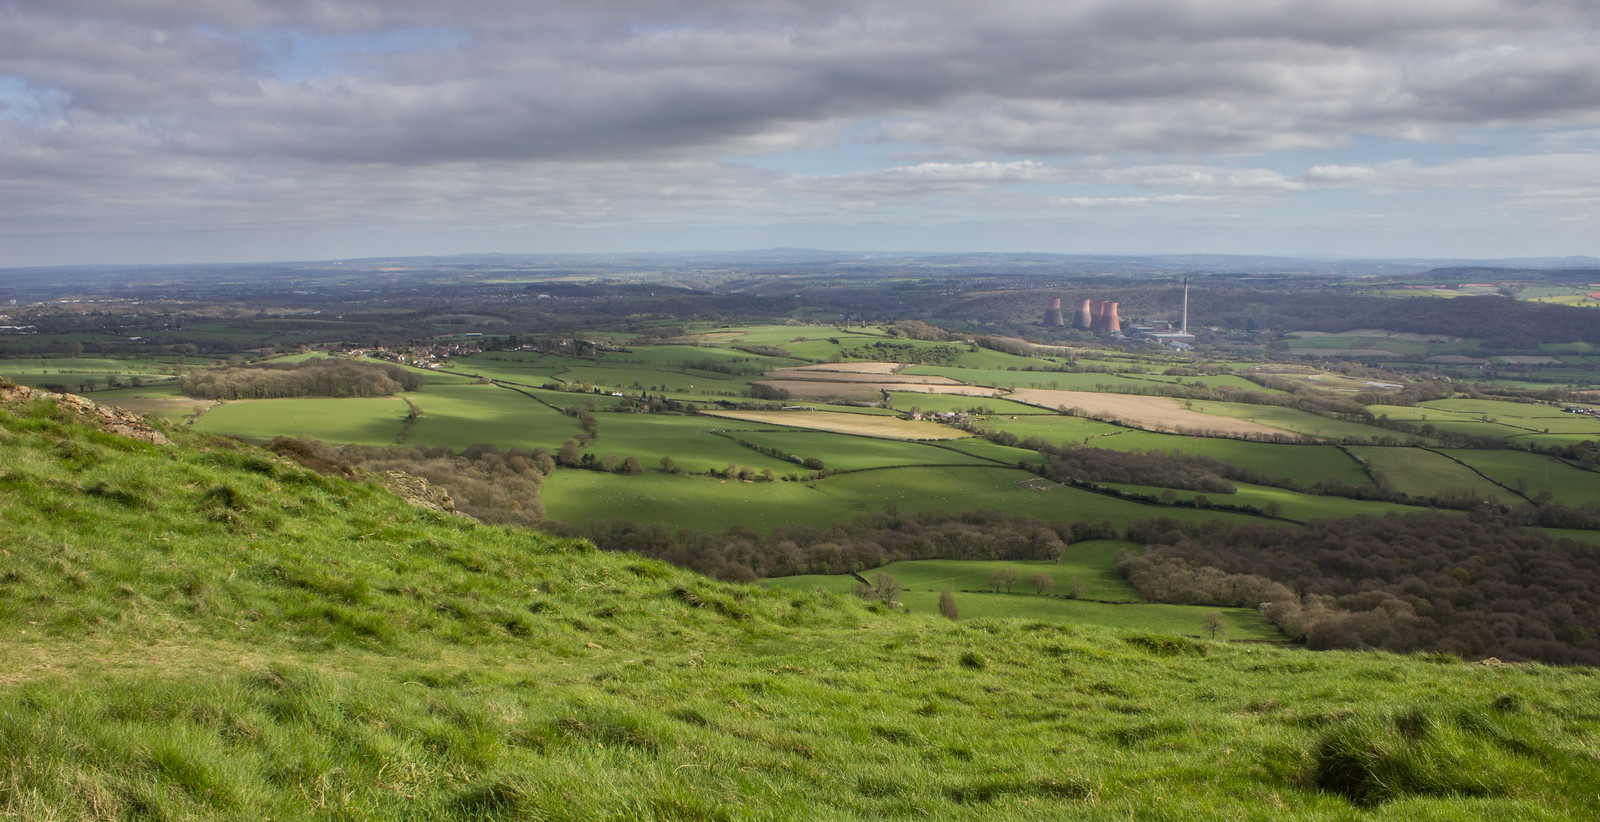 View from the top of the wrekin